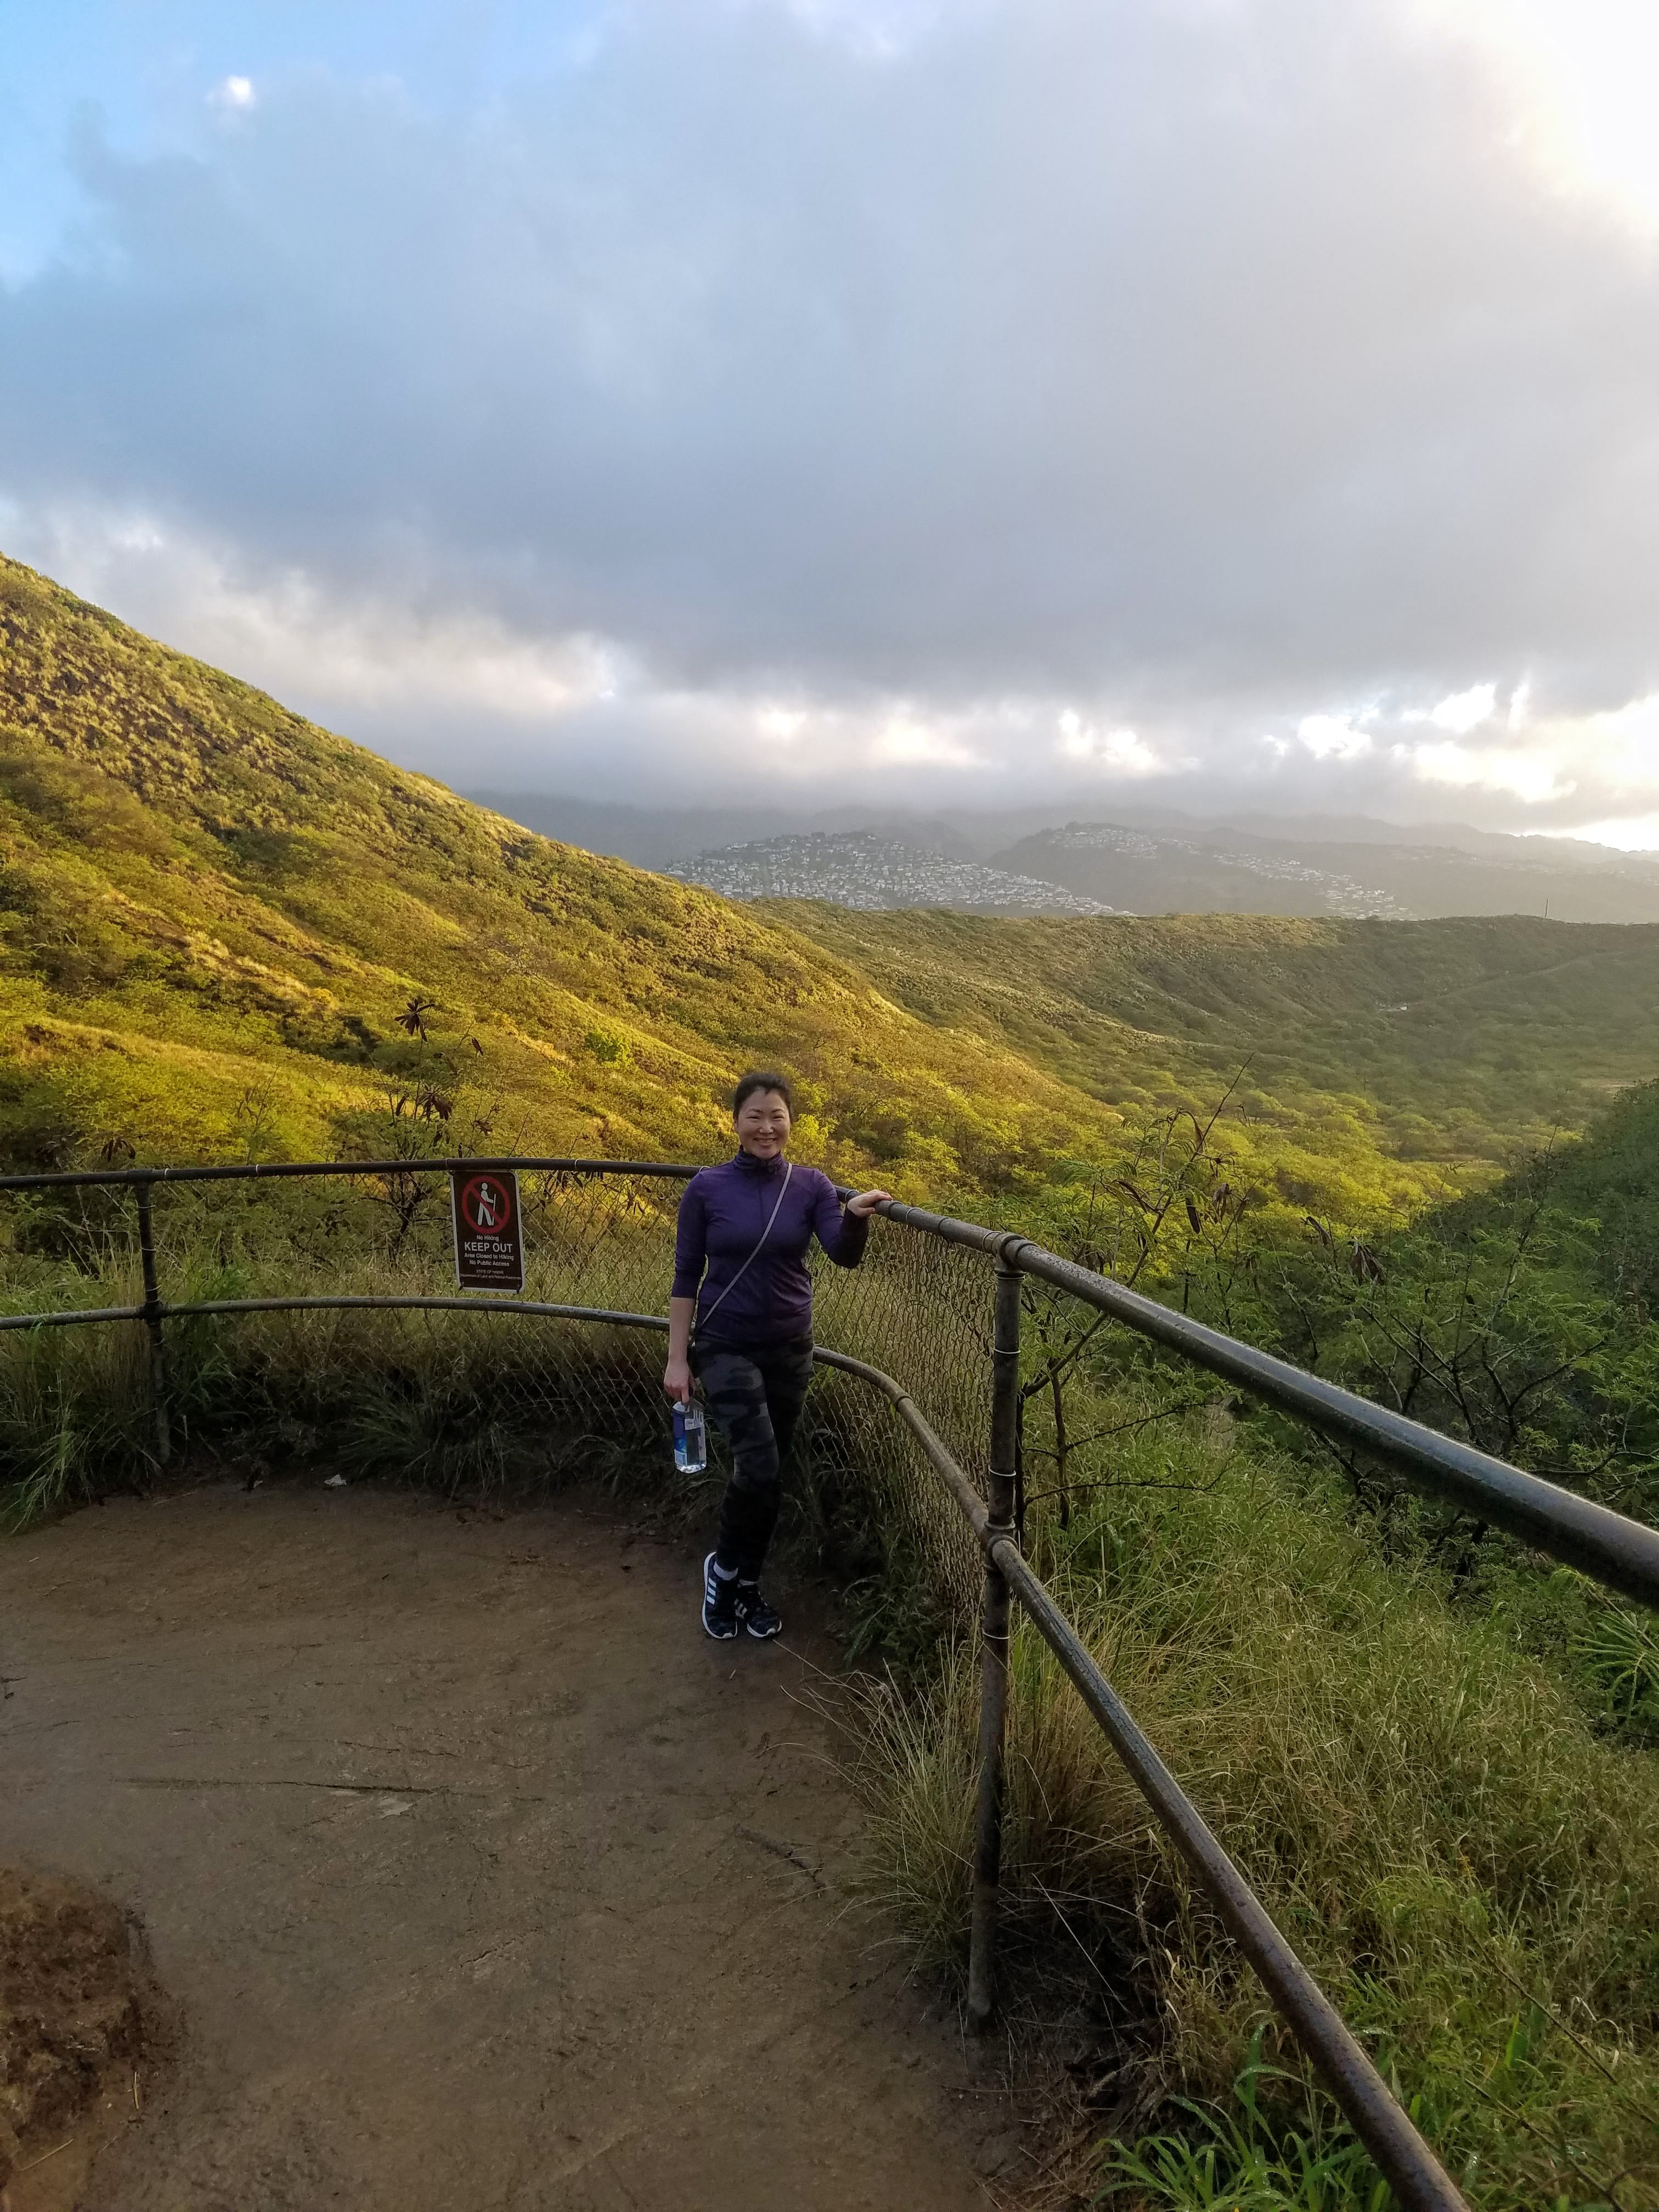 SunAh standing by the guard rails on the trail at Diamond Head crater. Behind her is verdant valleys.